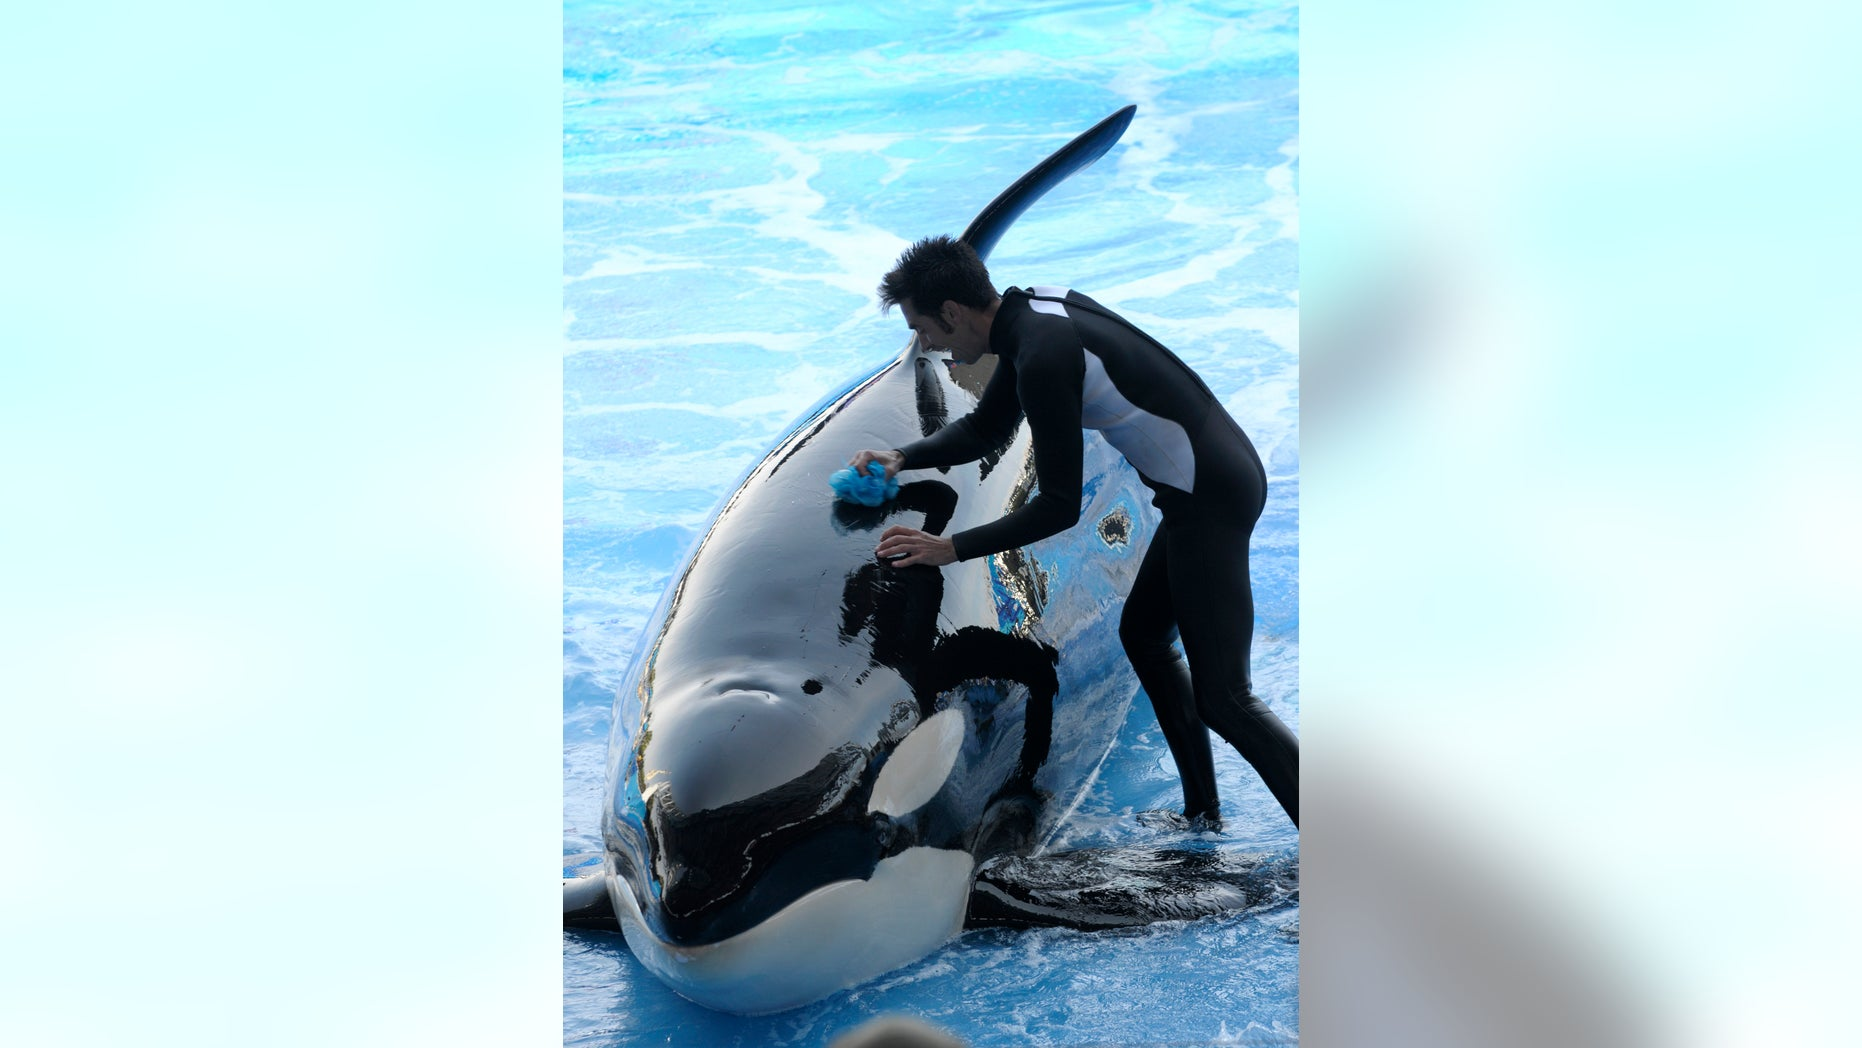 In a March 7 2011 file photo, trainer Joe Sanchez, right, works with killer whale Kayla during the Believe show in Shamu Stadium at the SeaWorld Orlando theme park in Orlando, Fla.